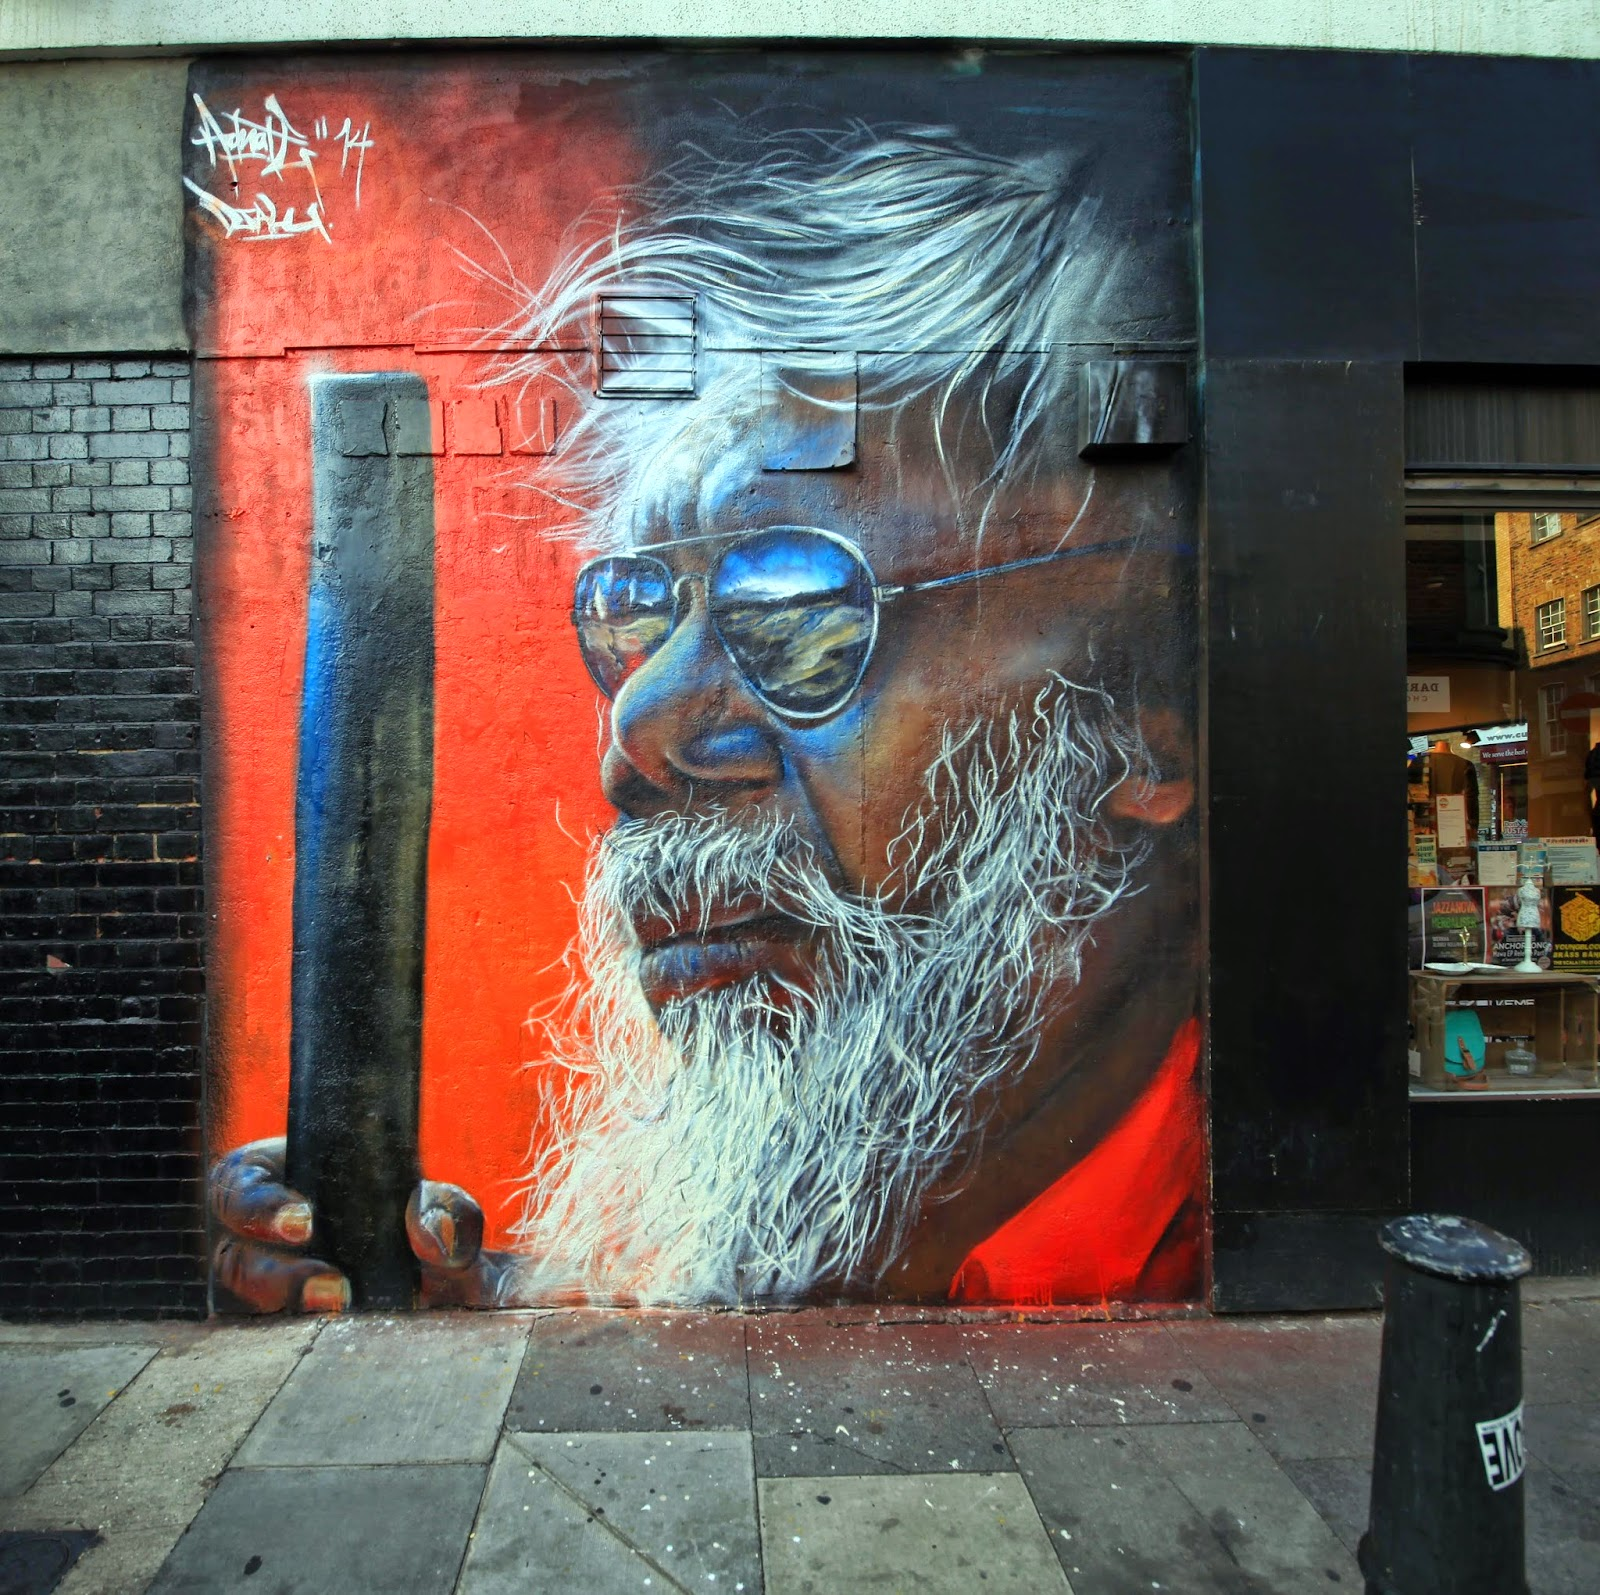 After a series of collaboration with Smug and Sofles in Australia, Matt Adnate has now landed in good old Europe where he just wrapped up two pieces in East London, UK.